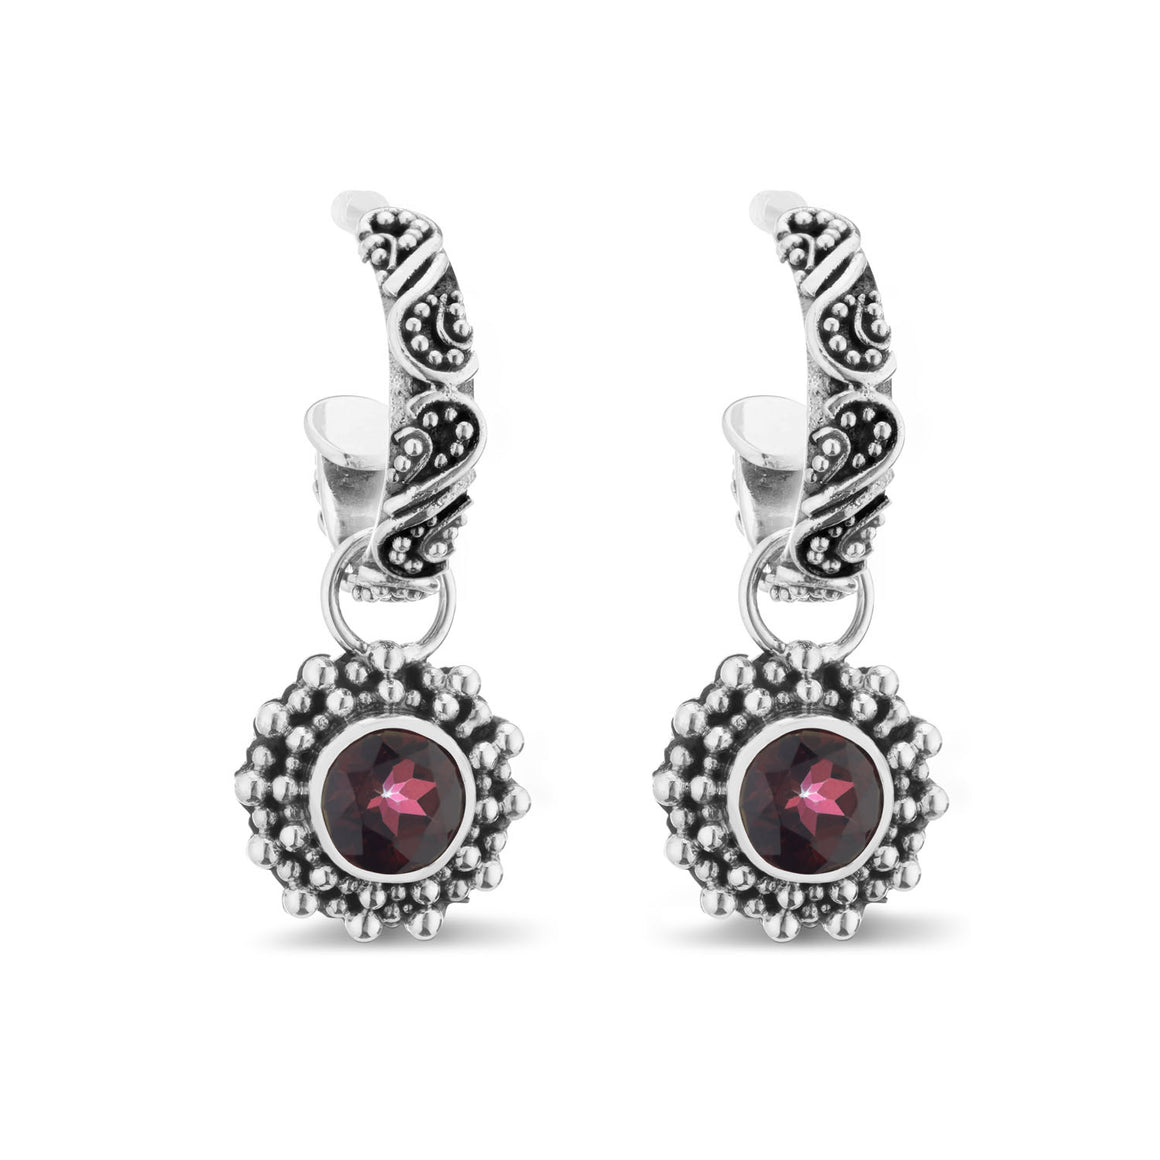 Turkish Delight Earrings by Lori Bonn (113405GR)